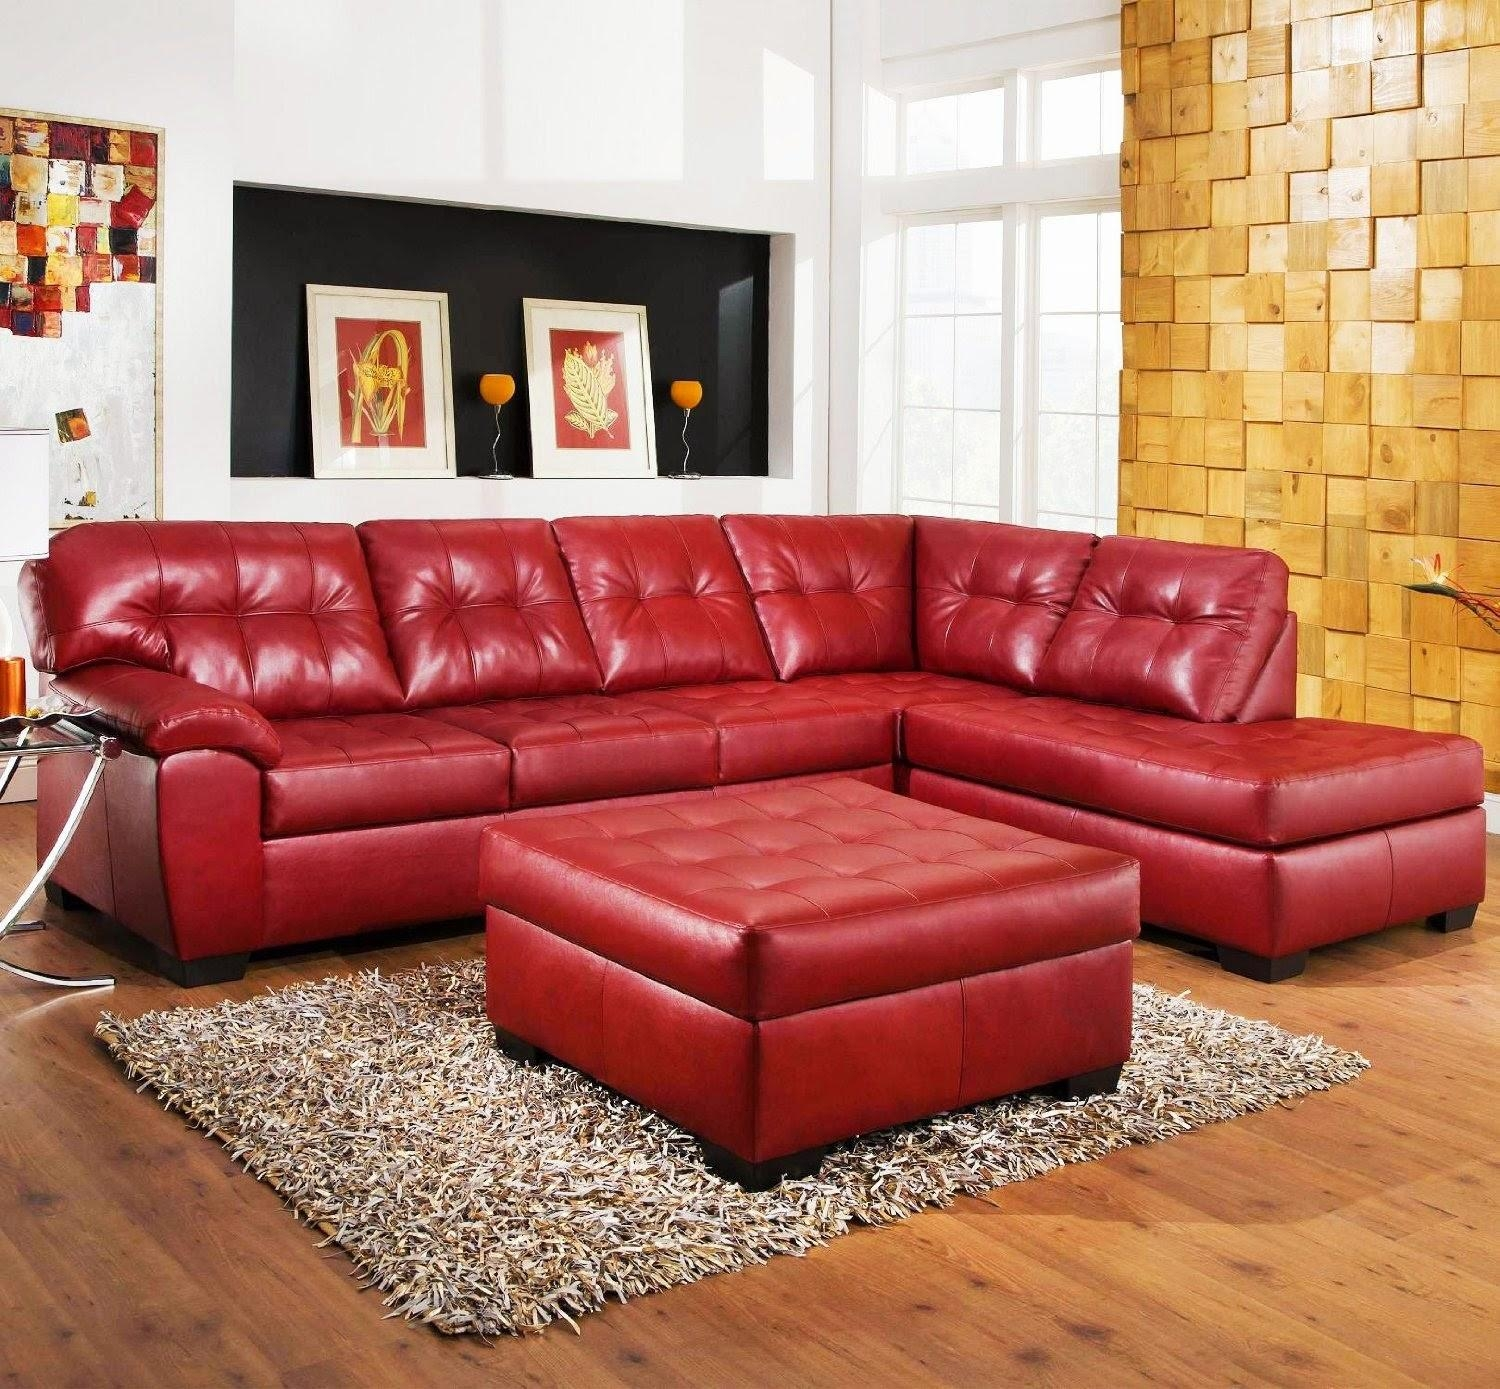 Red Sectional Sleeper Sofa – Tourdecarroll Regarding Red Sleeper Sofa (Image 17 of 20)